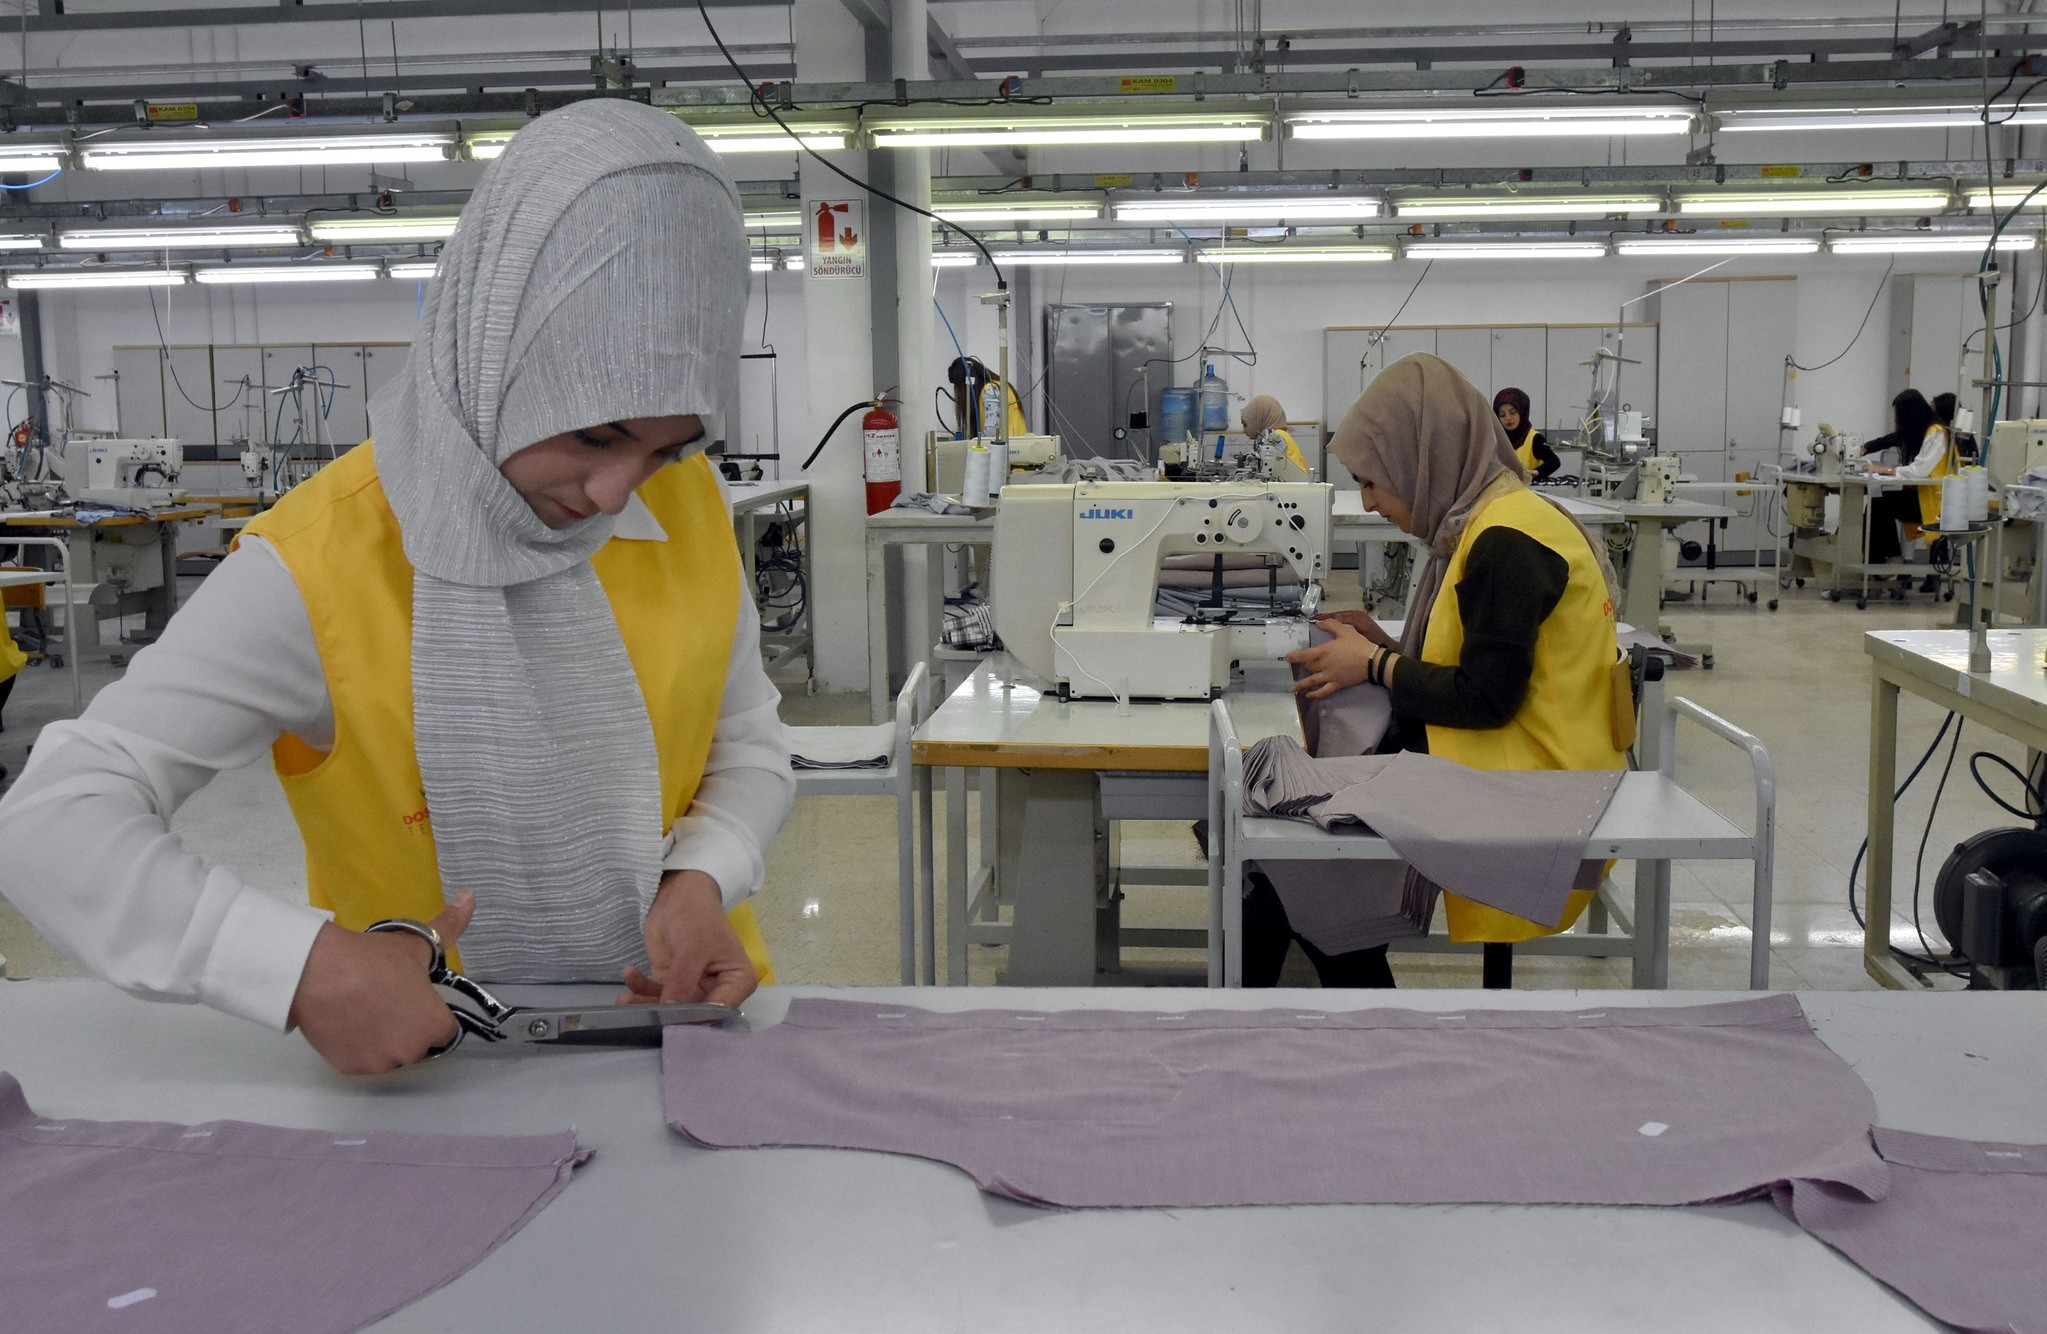 The main goal of Turkeyu2019s new economic plan is to ensure macroeconomic stability and raise production and welfare.